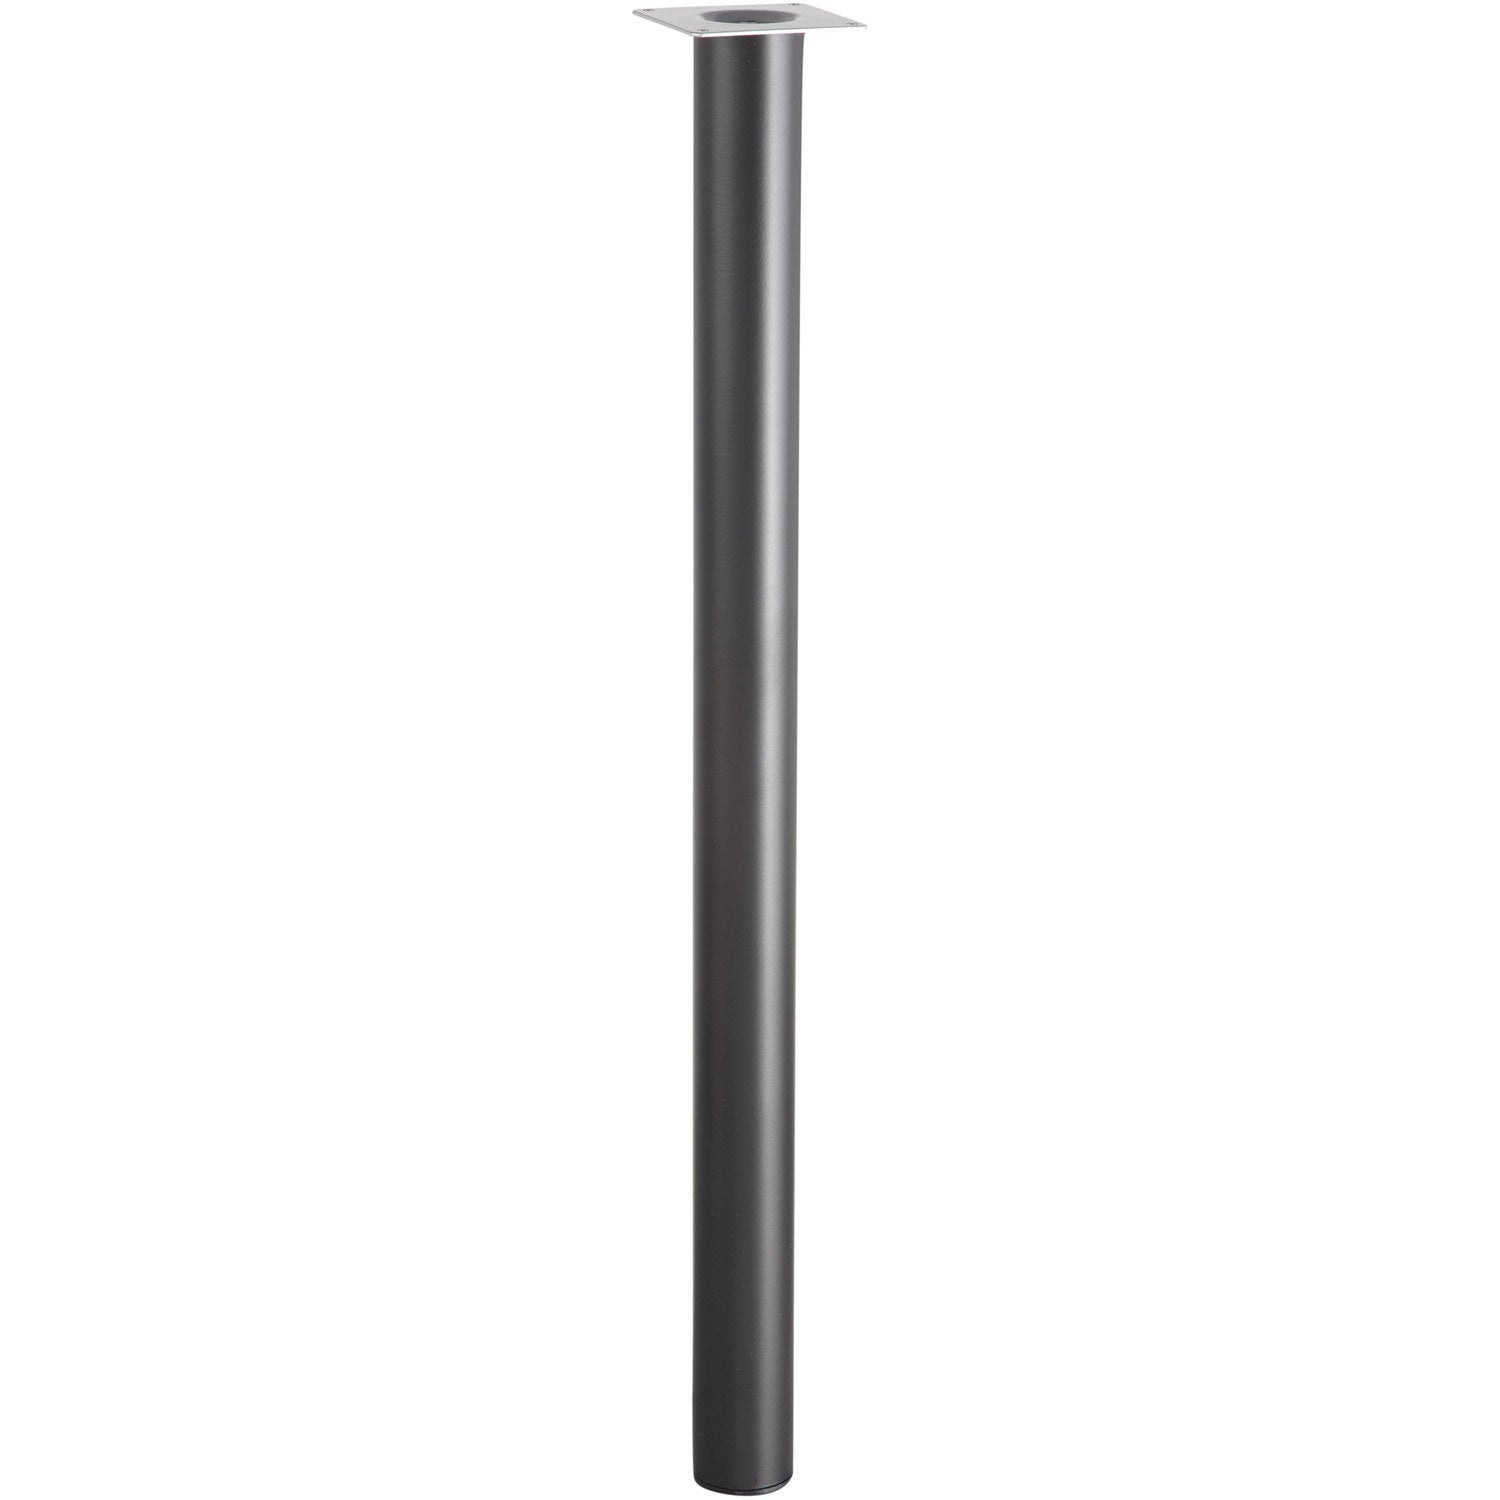 Lot de 4 pieds de table cylindrique fixes m tal poxy noir 71 cm leroy merlin - Leroy merlin pied de table ...